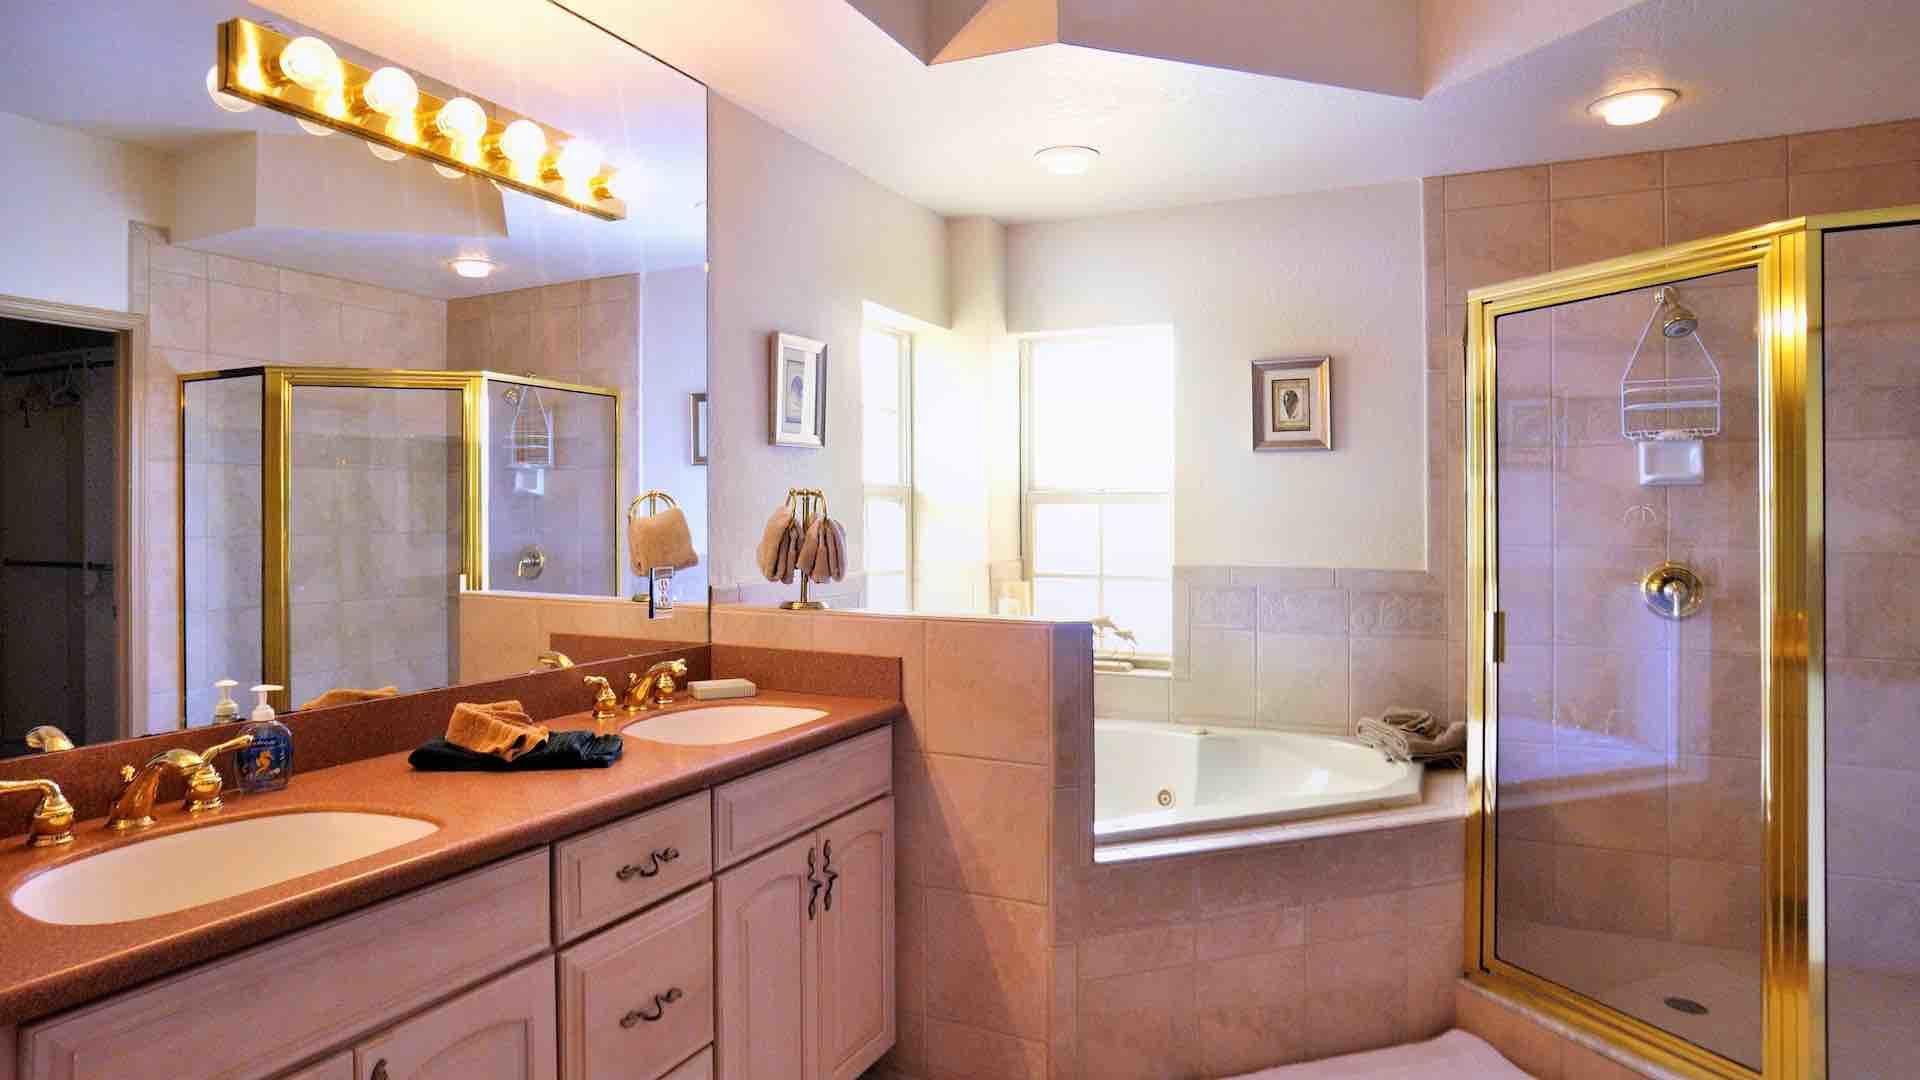 The master bathroom is en suite, with a shower and jacuzzi tub...